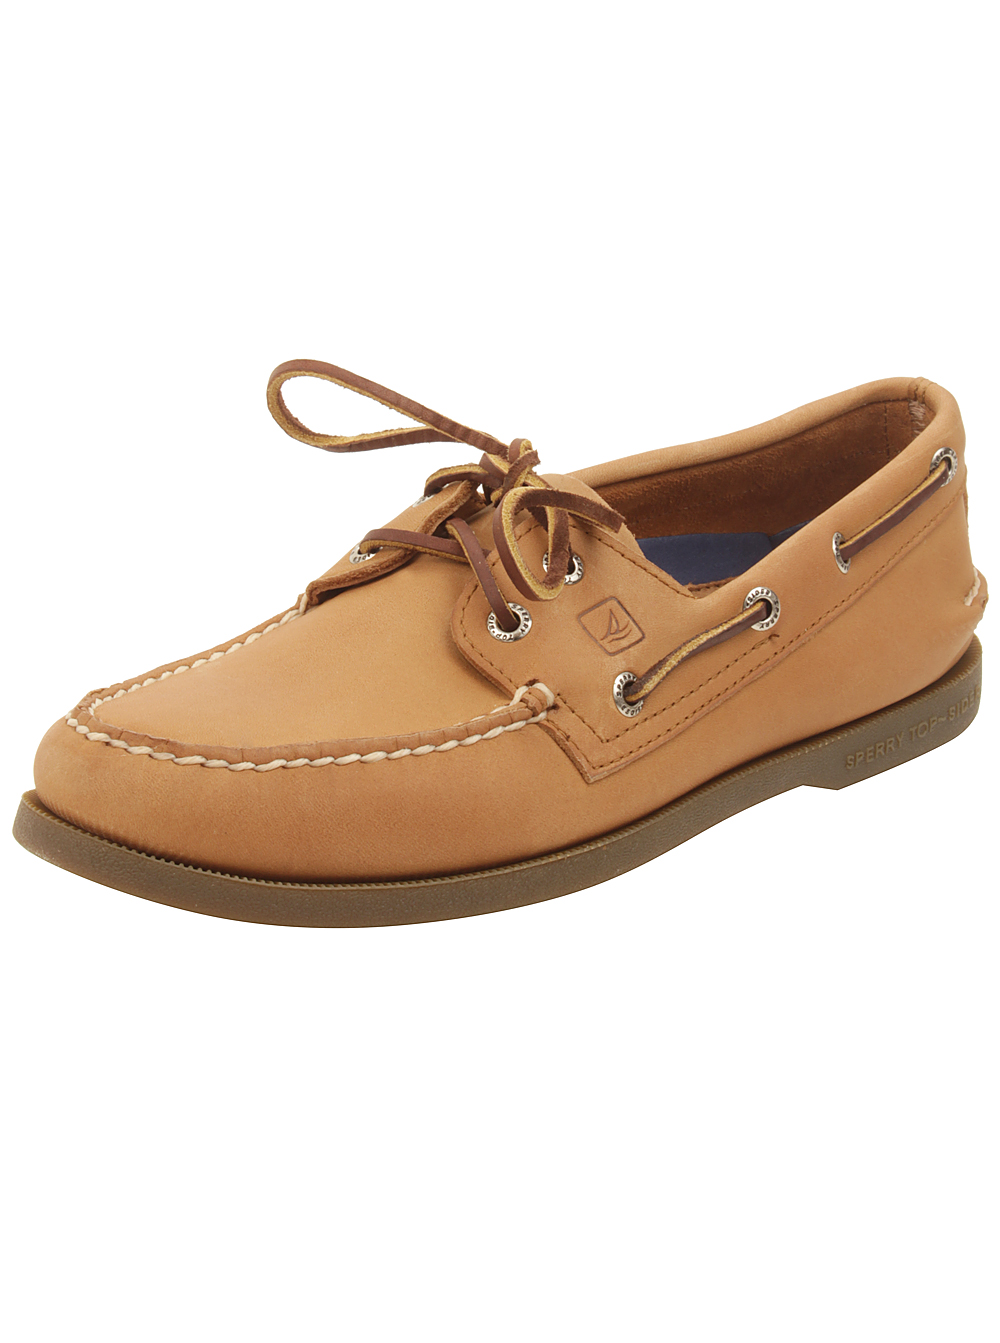 Sperry Mens A/O 2-Eye Boat Shoes in Sahara Leather